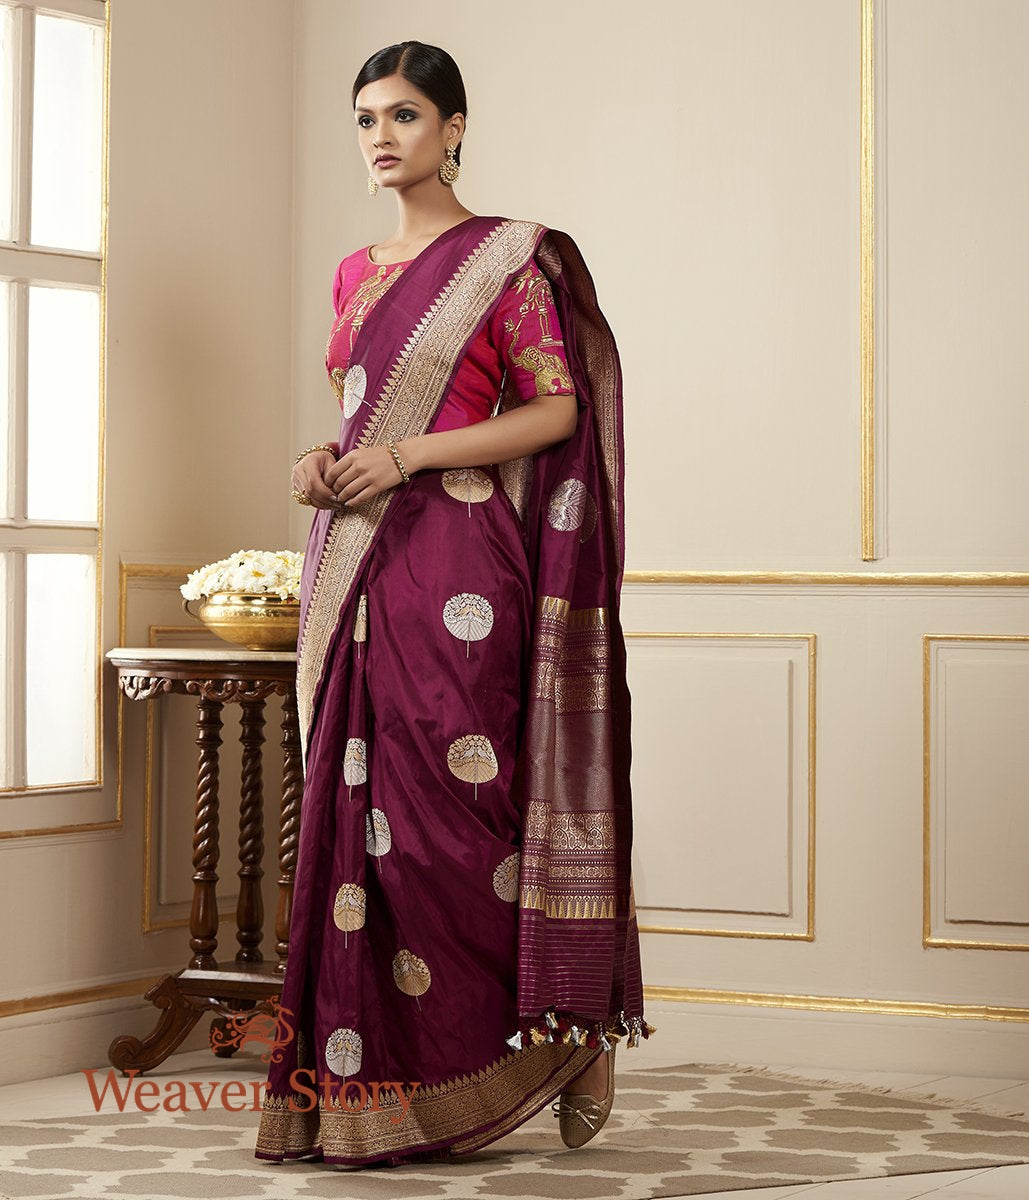 Handwoven Purple Banarasi Katan Silk Saree with Kadhwa Booti